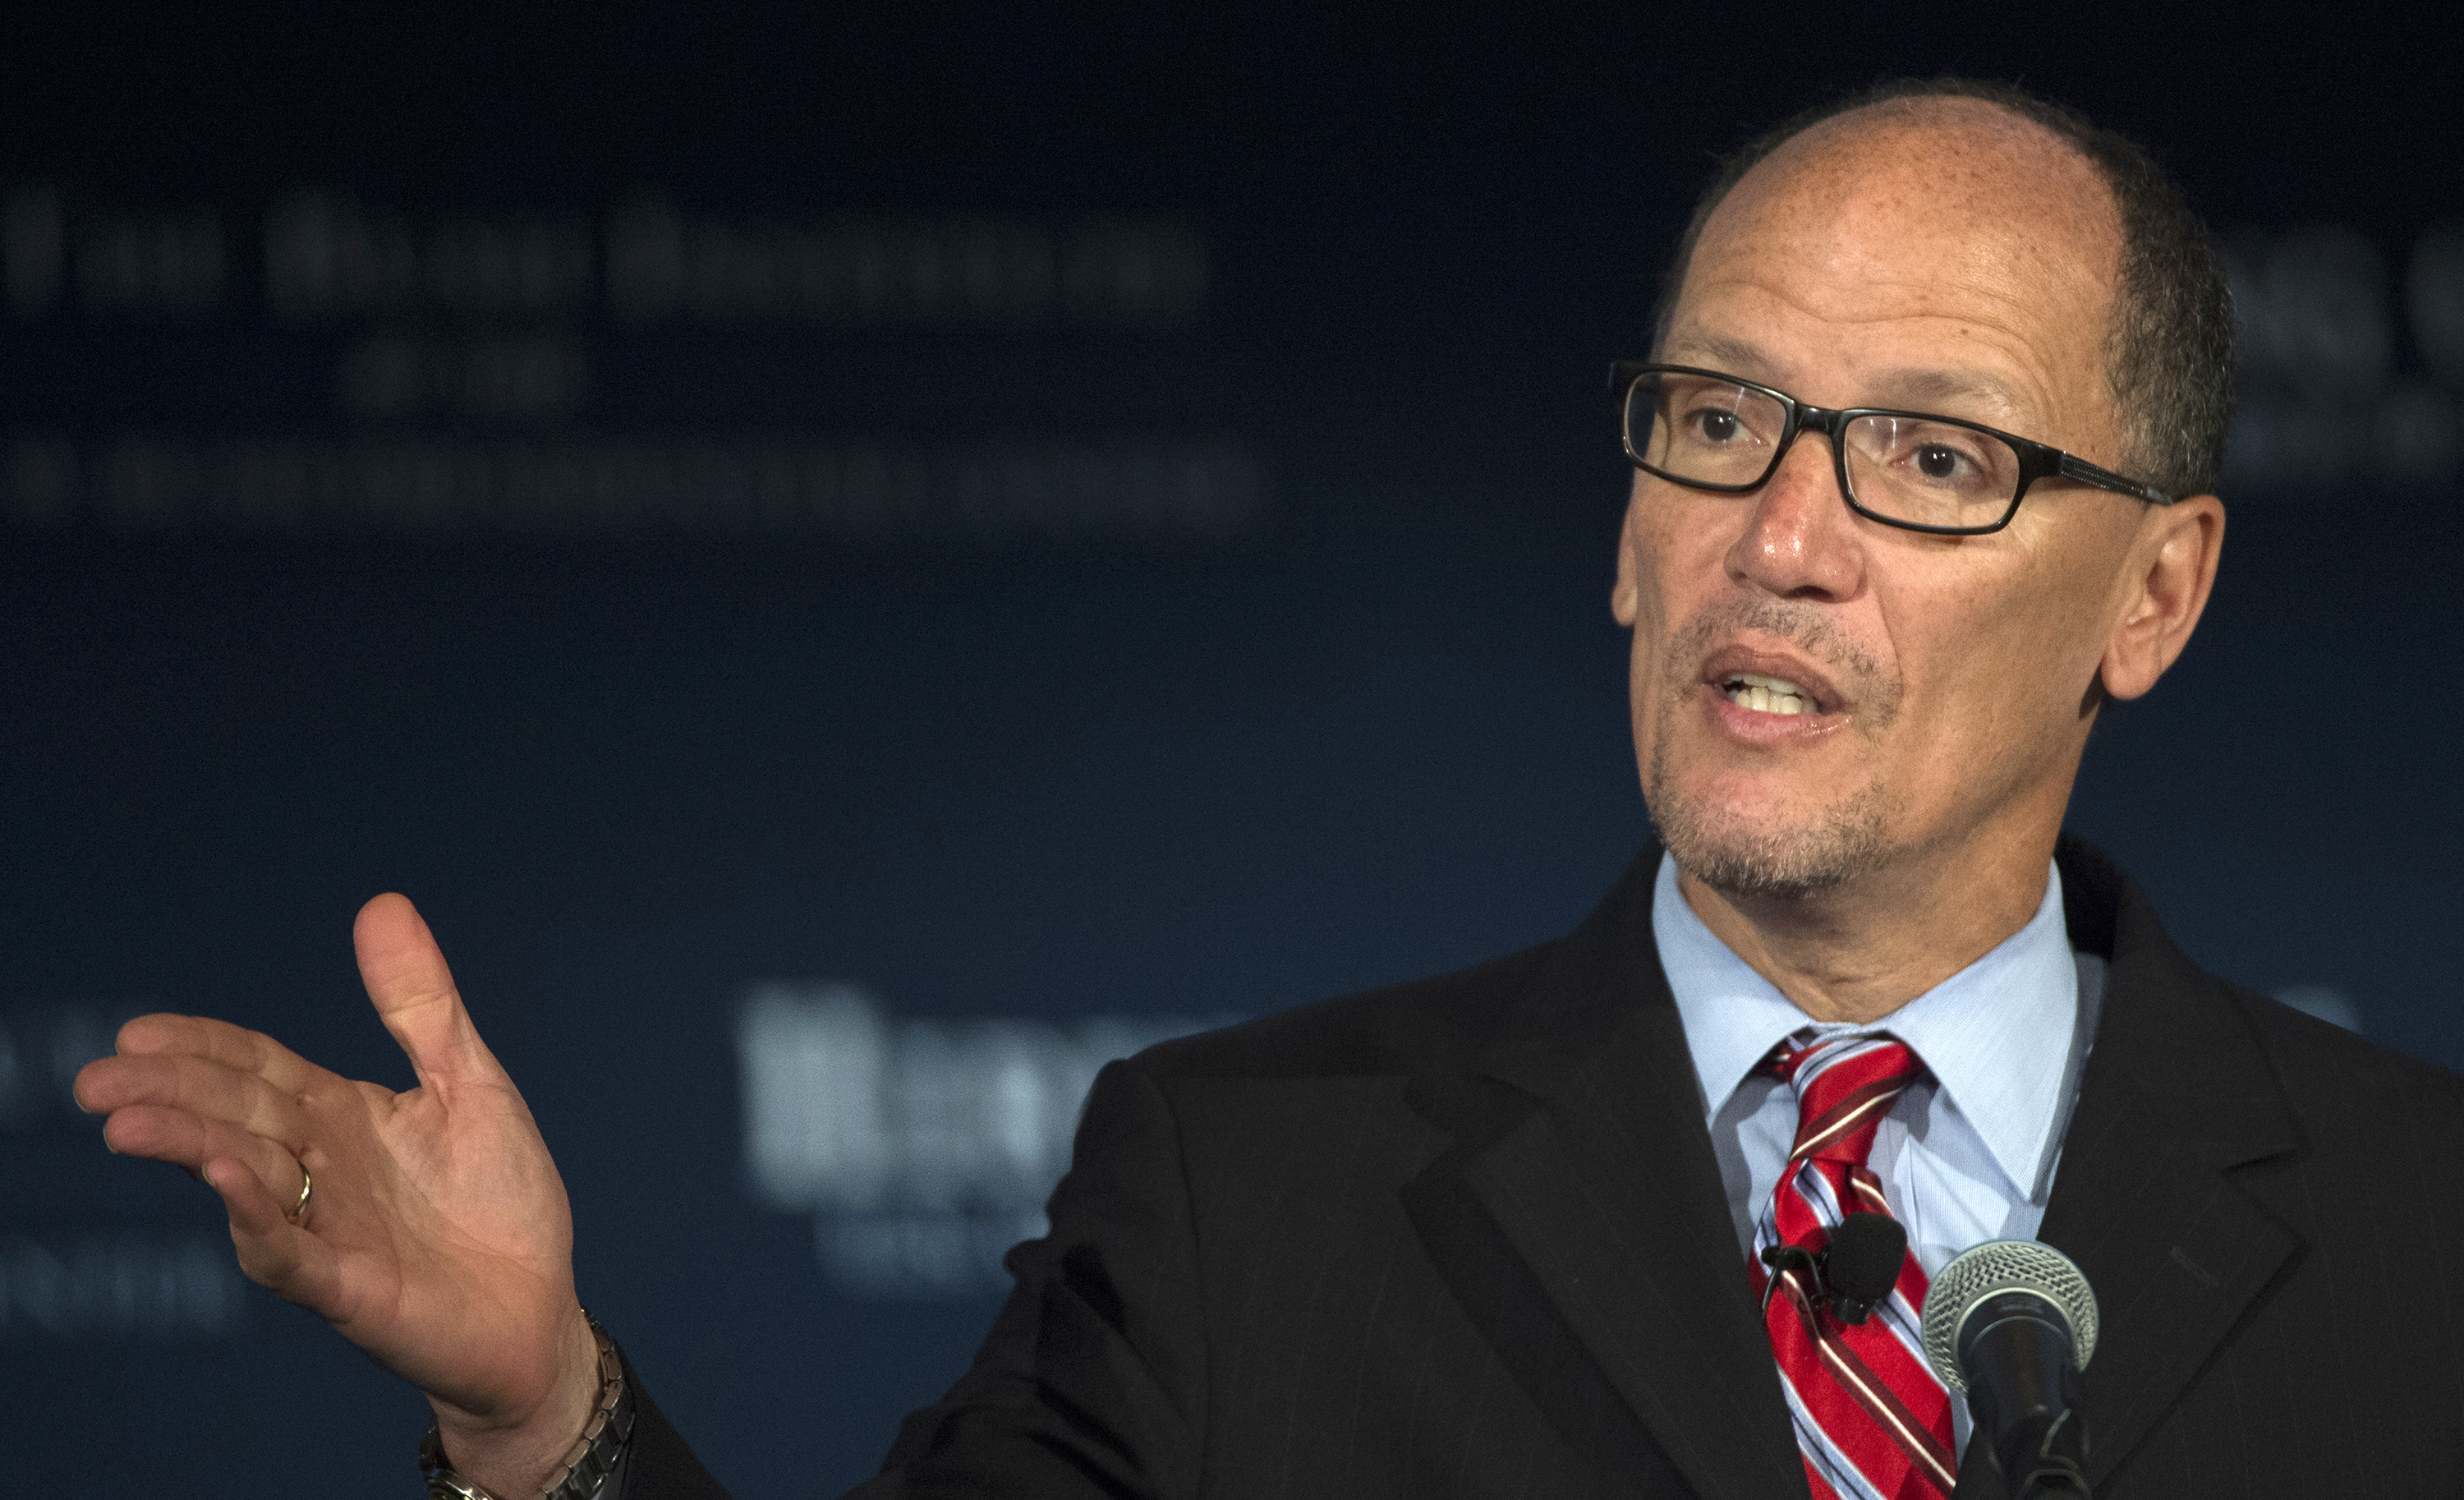 Labor Secretary Calls Workers' Comp Opt-Out Plans A 'Pathway To Poverty'